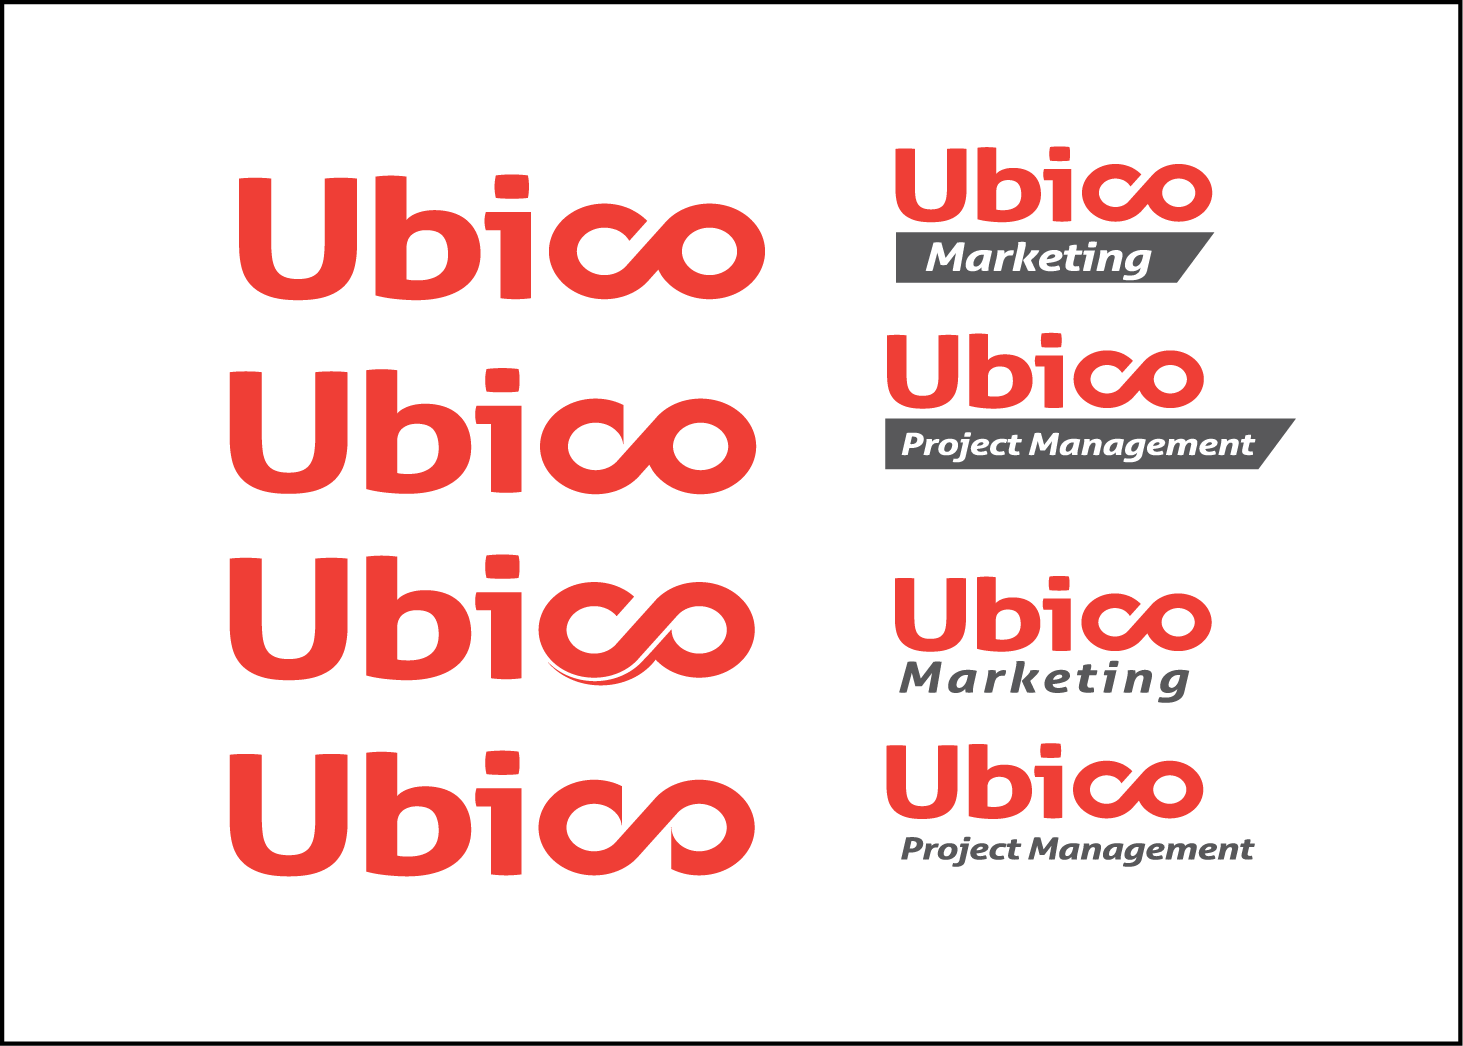 Modern Bold Marketing Logo Design For Ubico By Boink Design 11665390